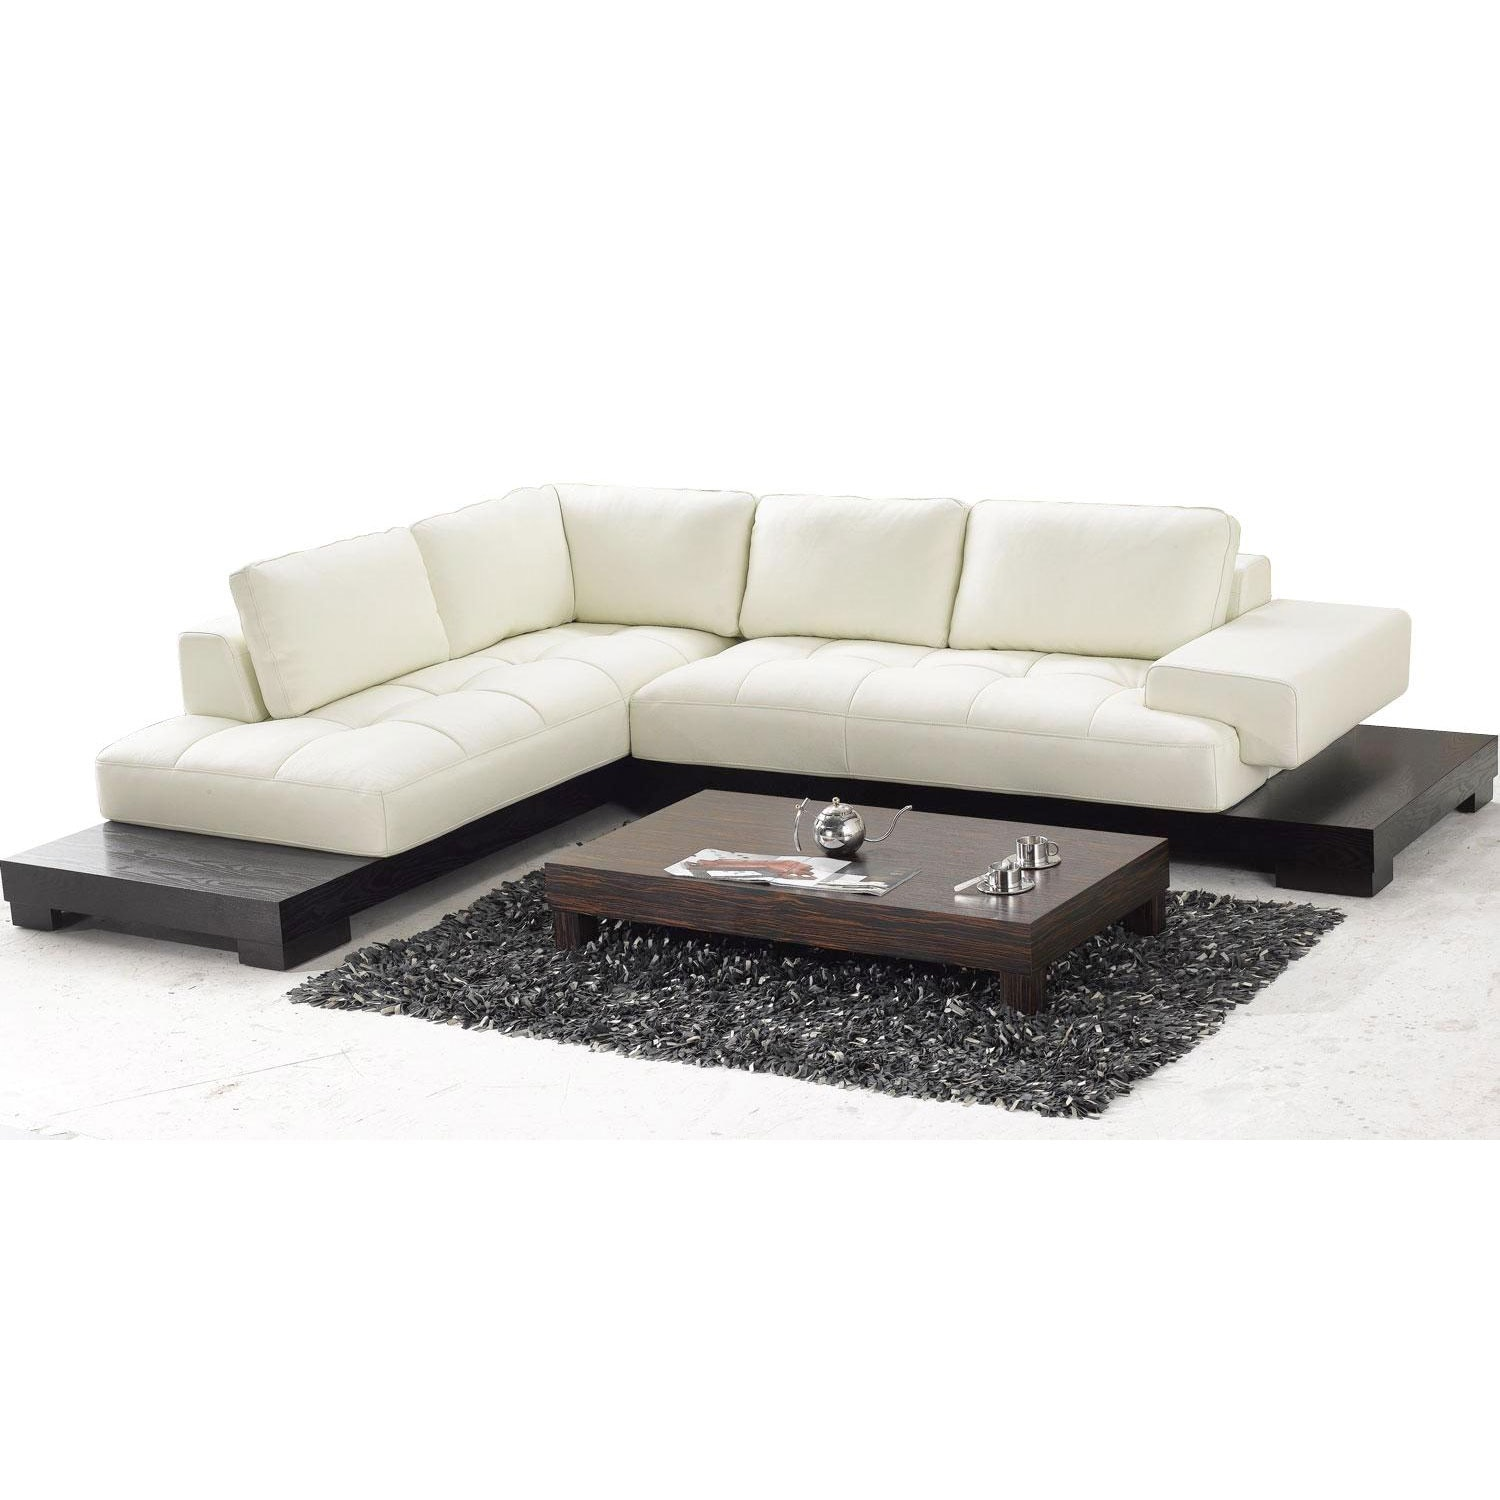 Shop tosh furniture beige leather sectional sofa free shipping today overstock com 5224546